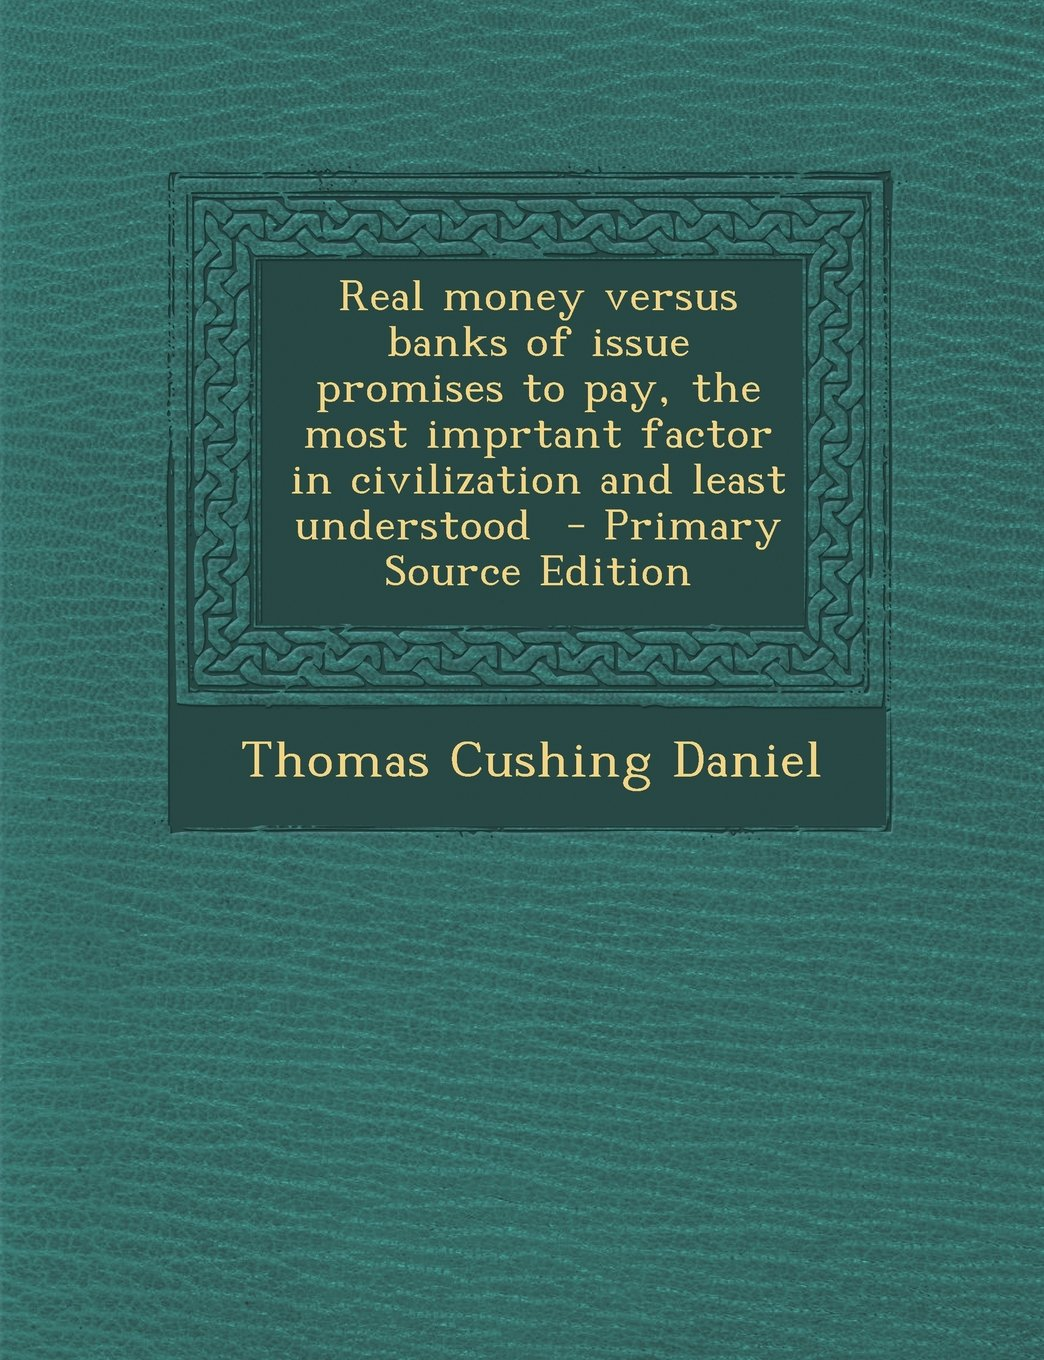 Real Money Versus Banks of Issue Promises to Pay, the Most Imprtant Factor in Civilization and Least Understood - Primary Source Edition PDF